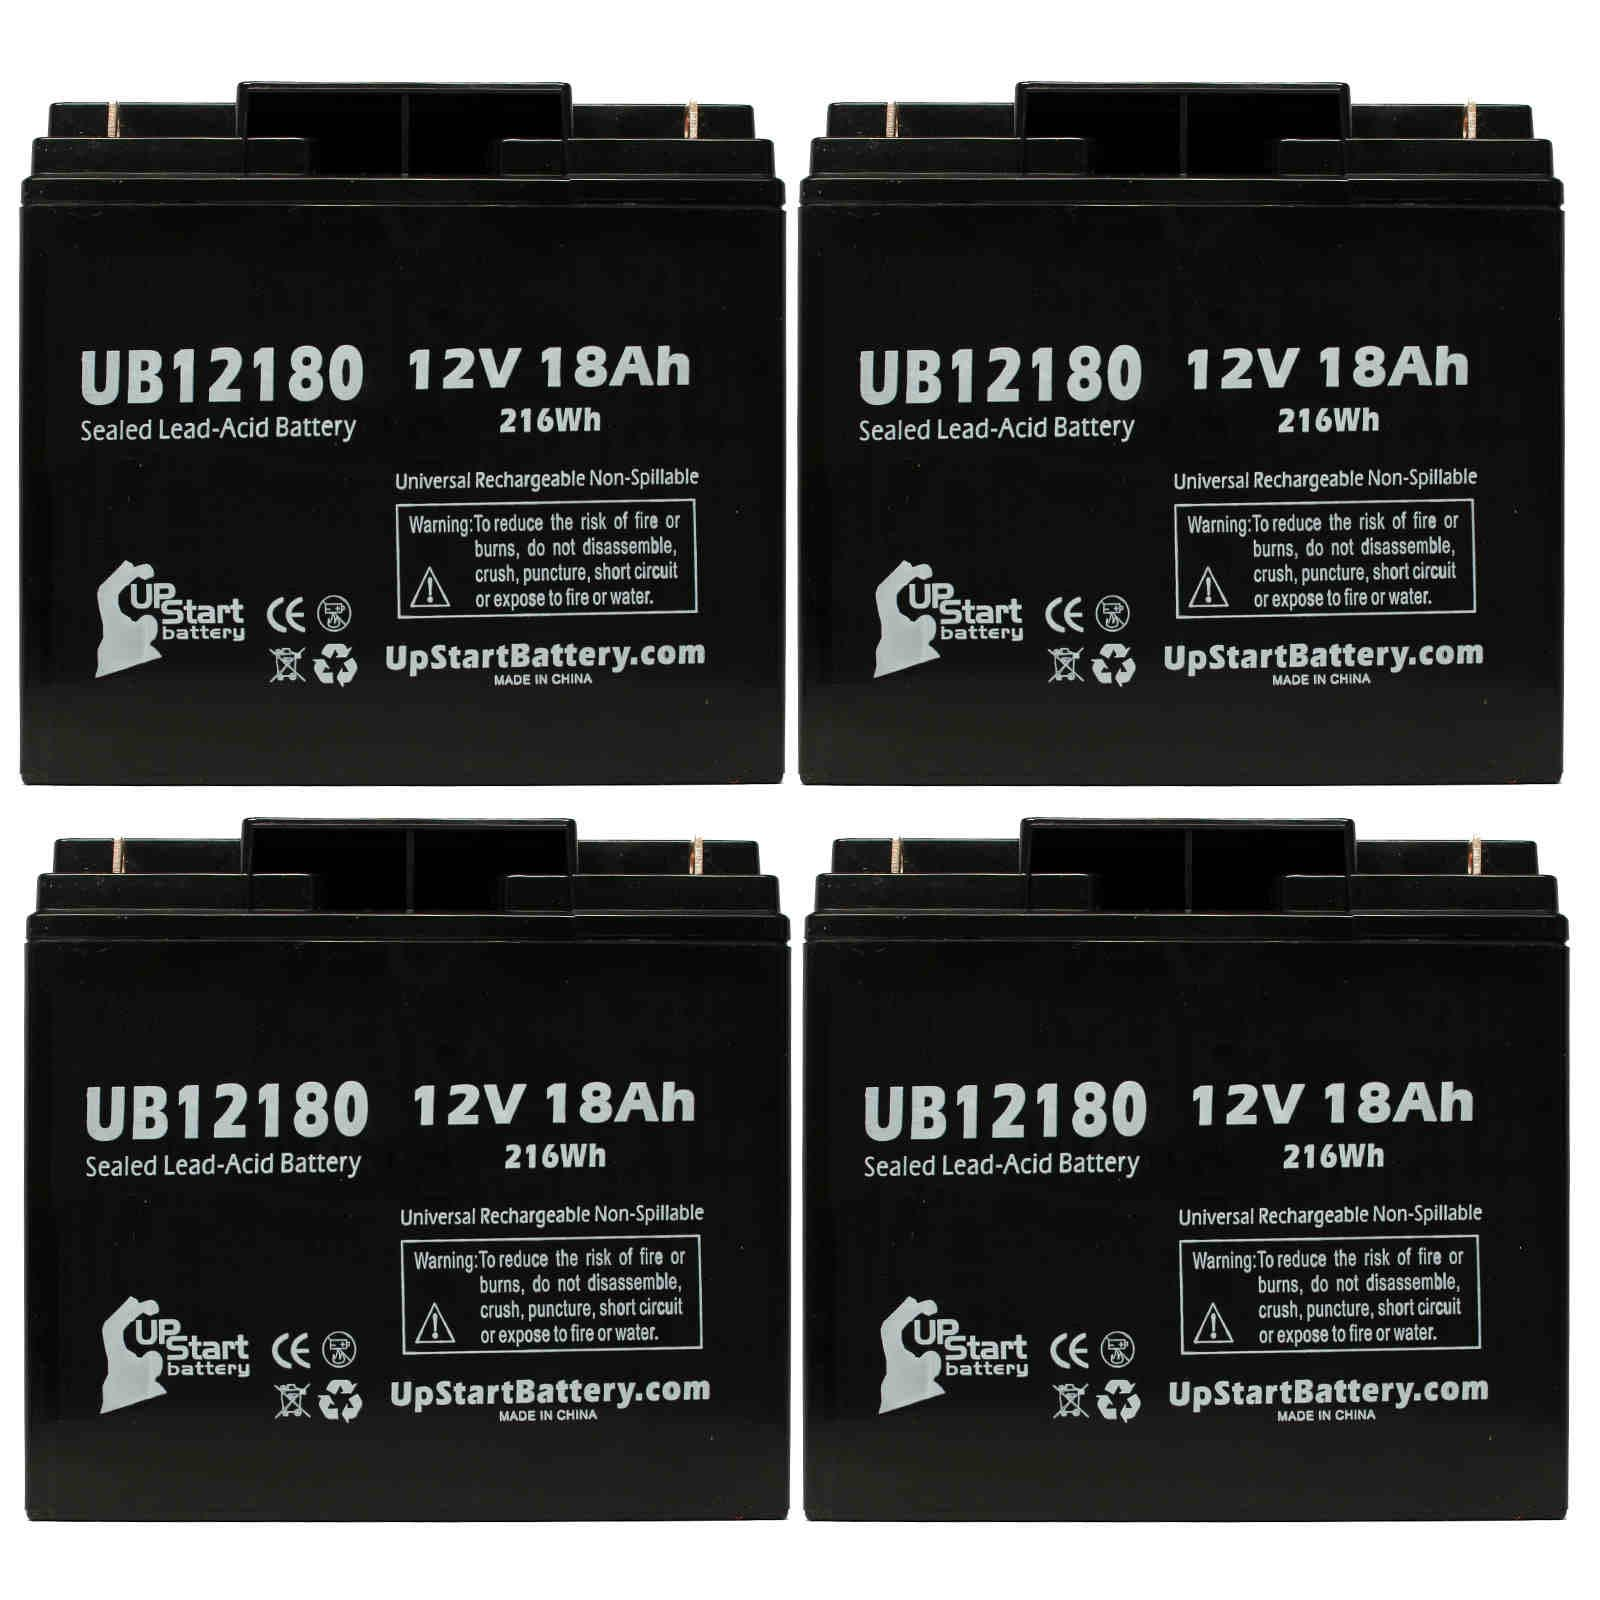 UpStart Battery 4x Pack - Exide Batteries PW51193000 Battery - Replacement UB12180 Universal Sealed Lead Acid Battery (12V, 18Ah, T4 Terminal) at Sears.com